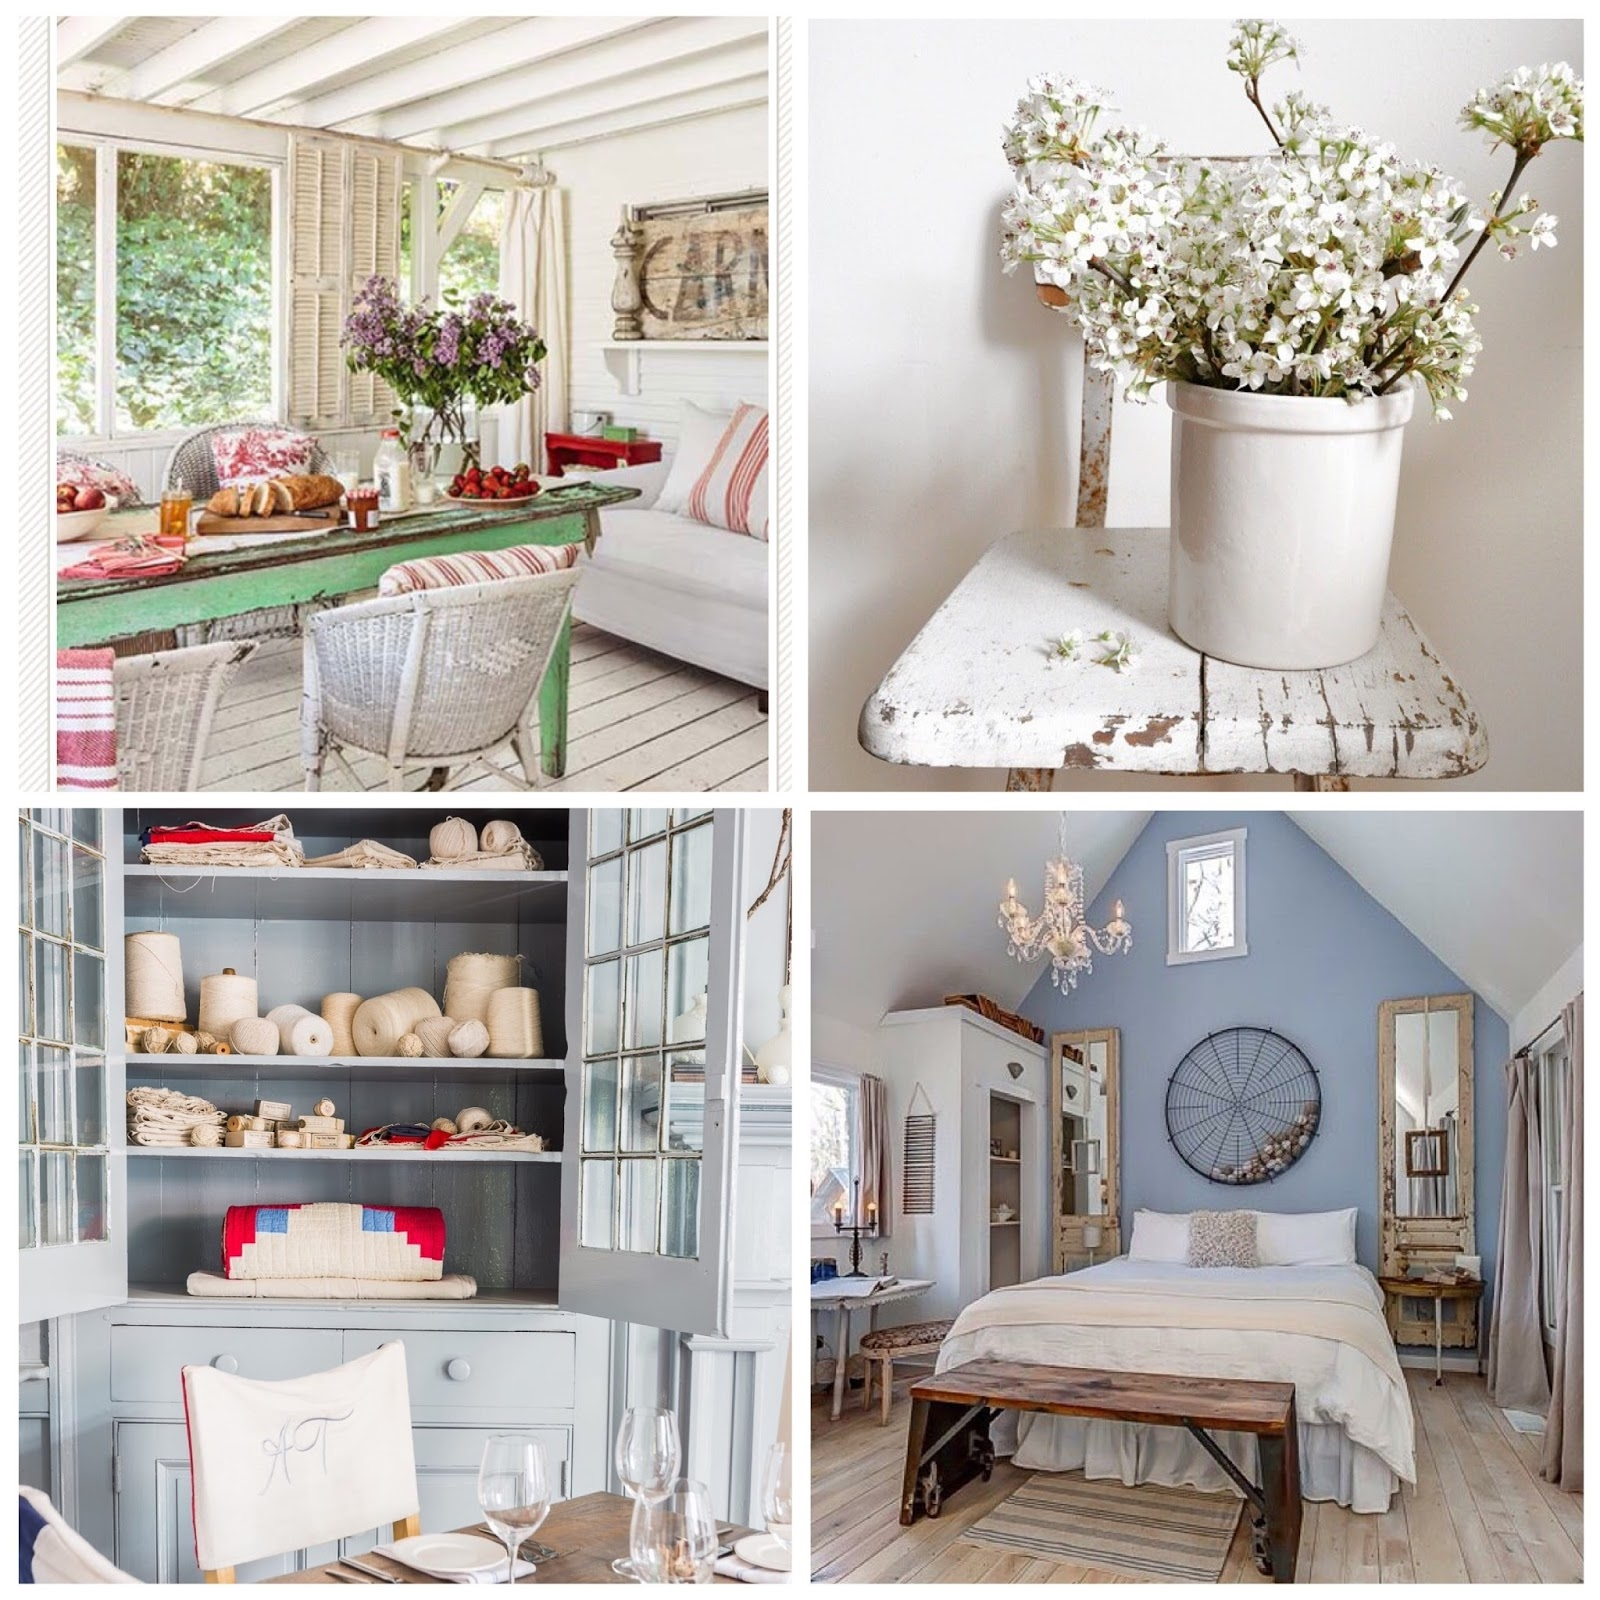 Top Left Photo: This Old House Magazine, Interior Design: Lizzie McGraw - Tumbleweed and Dandelion; Top Right Photo & Interior Design: Becky Cunningham - Buckets of Burlap; Bottom Left Photo: Alyssa Rosenheck Photography, Interior Design: Kim Leggett - City Farmhouse; Bottom Right Photo: Shelter and Roost, Interior Design: Kim Leggett - City Farmhouse